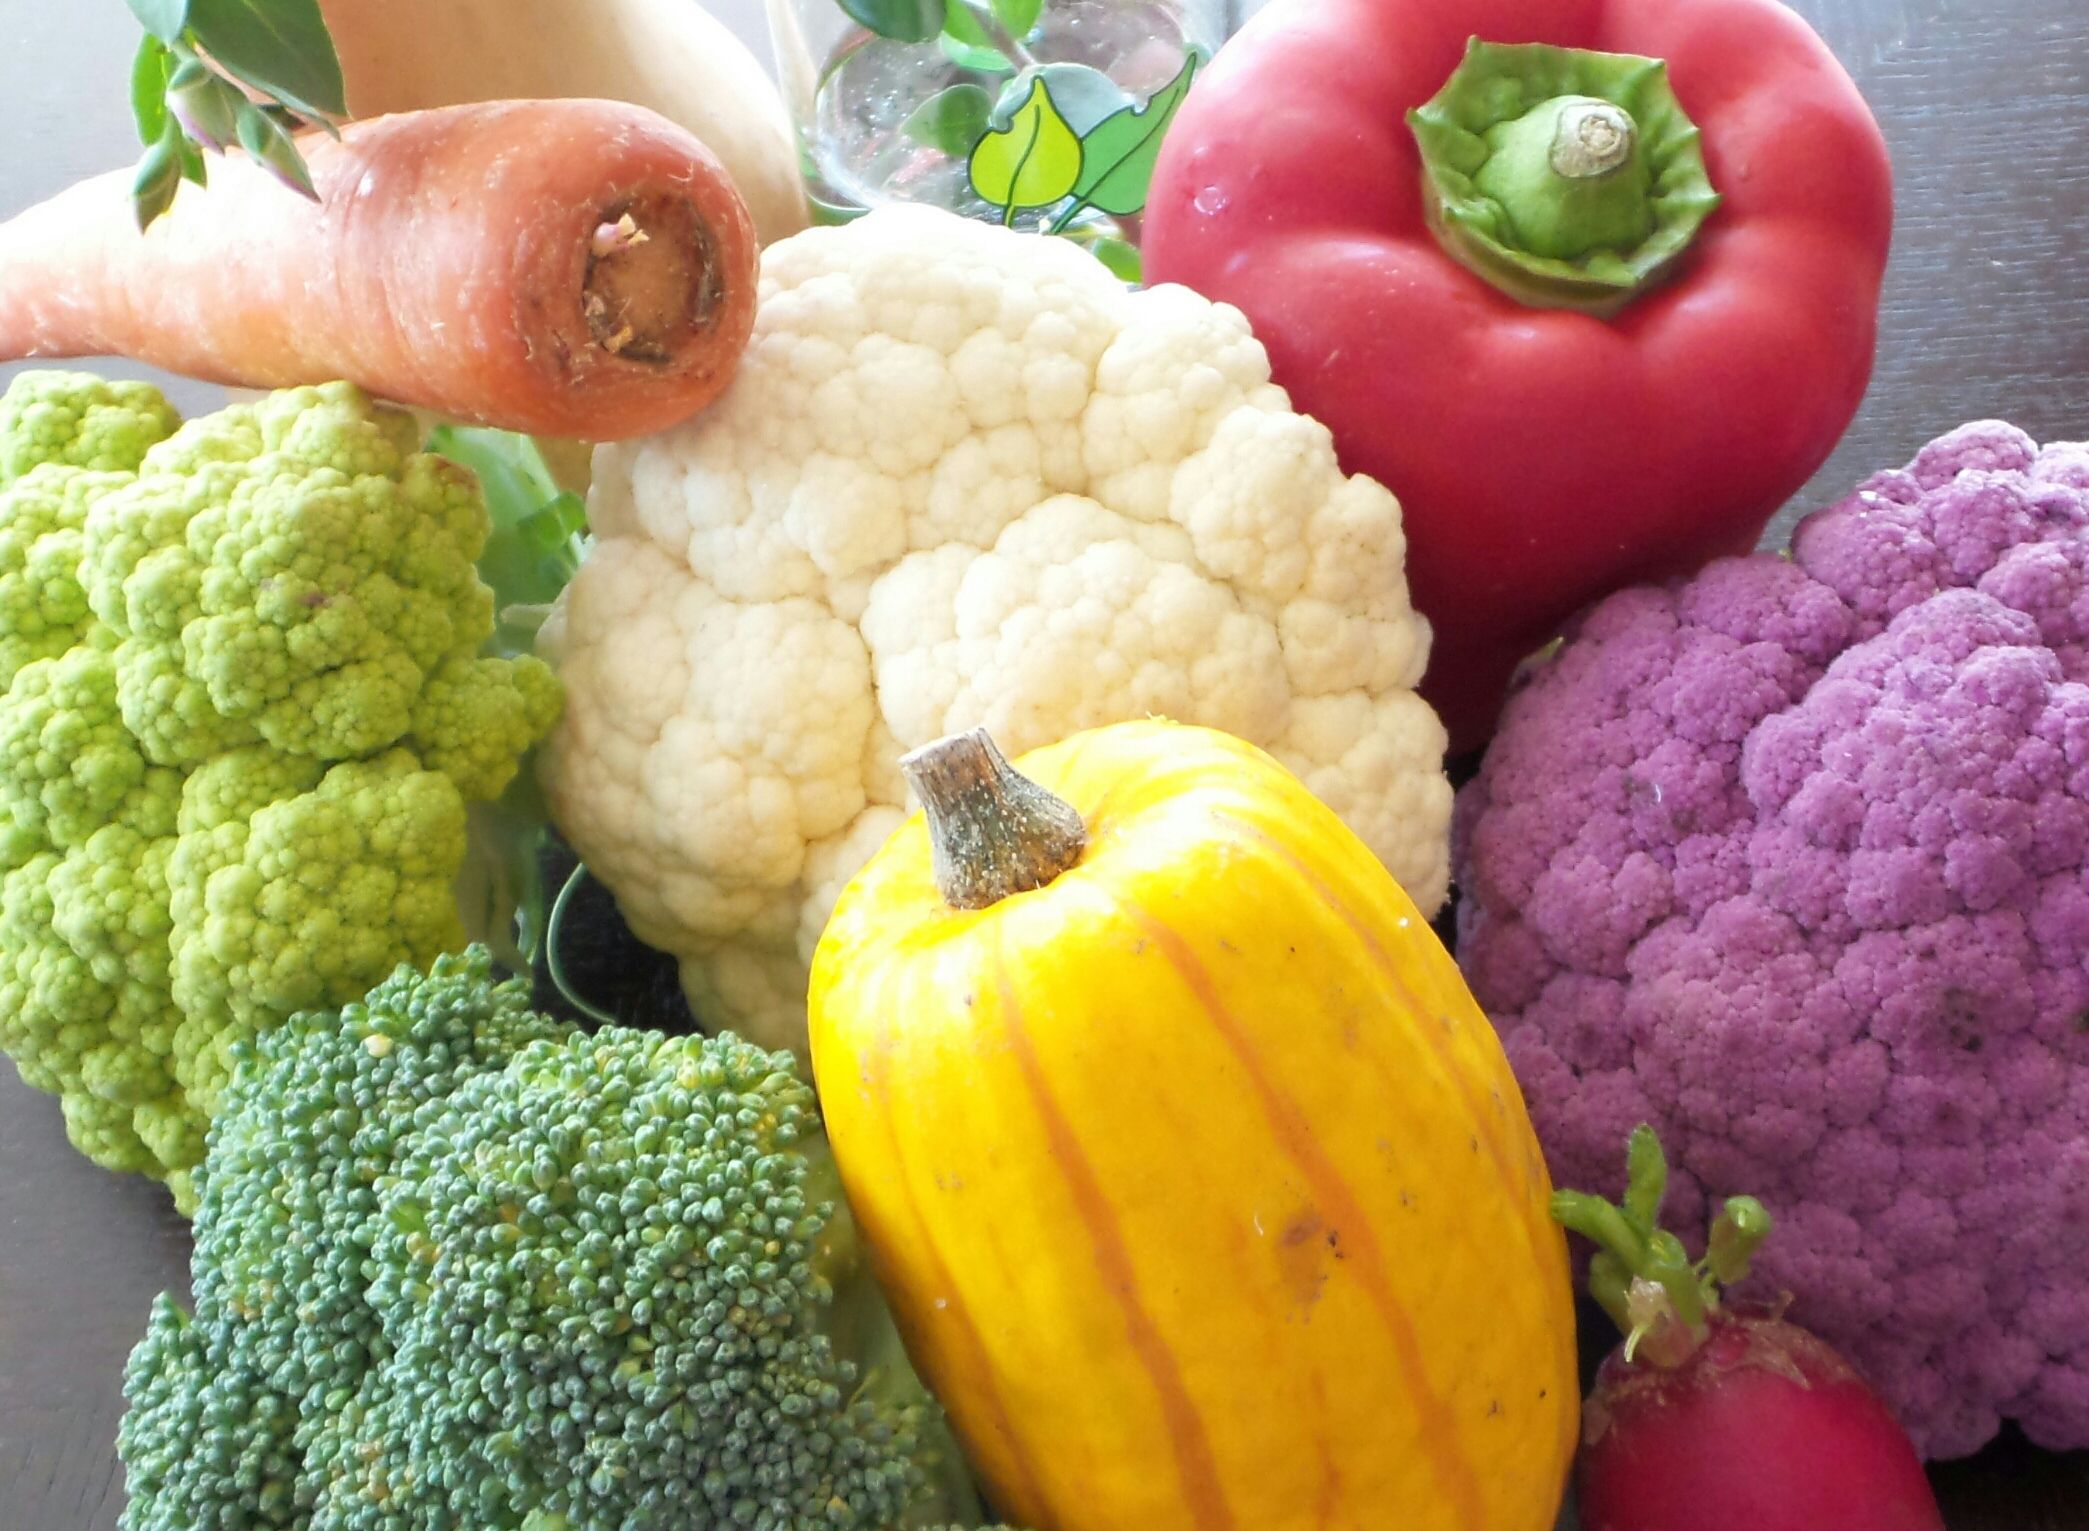 ColorfulVegetables